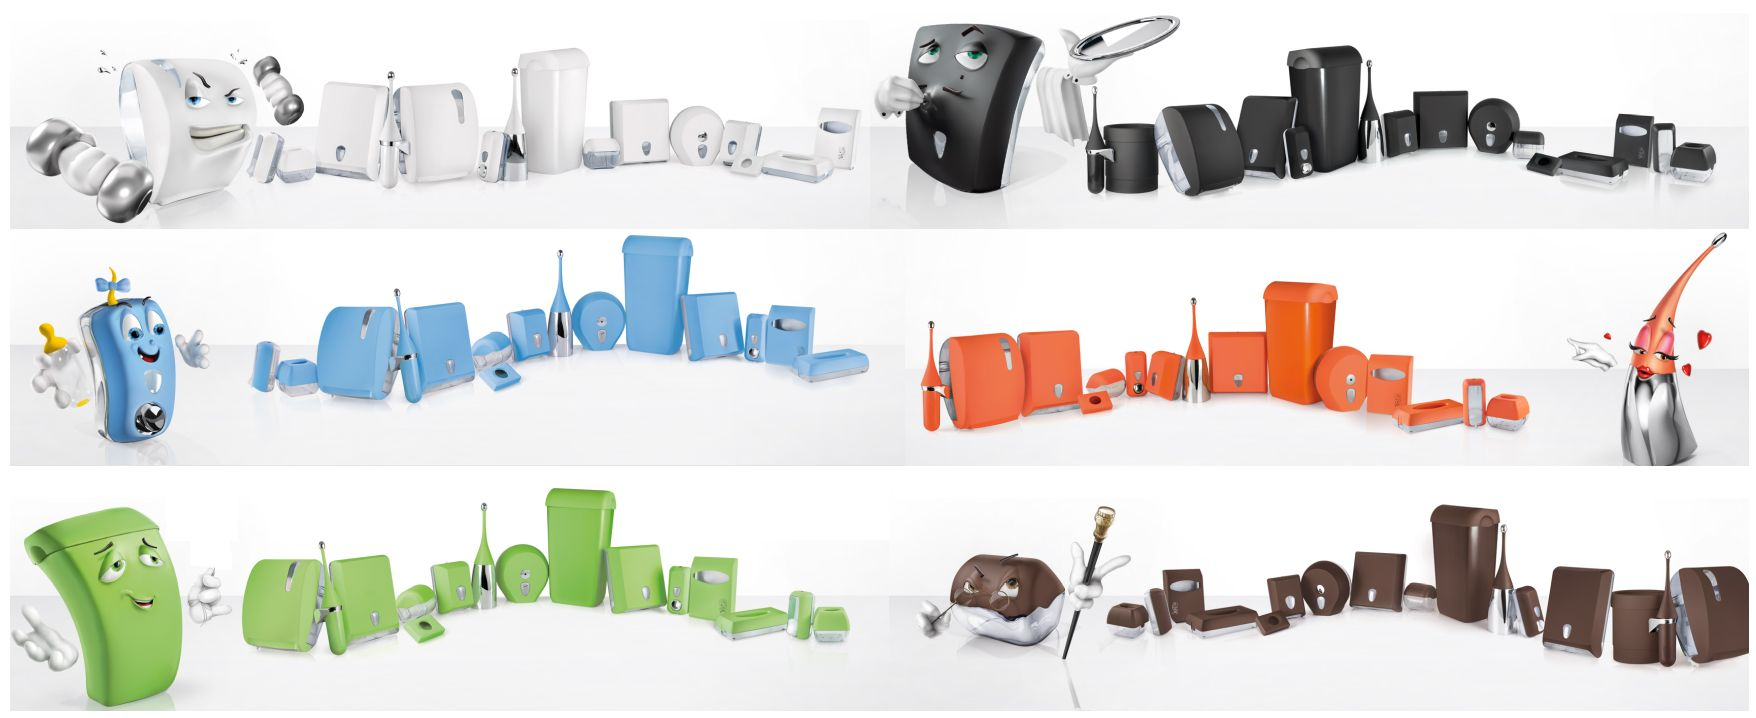 Soap-Dispensers-Black-White-Green-Blue-Orange-Brown-Design-Lines